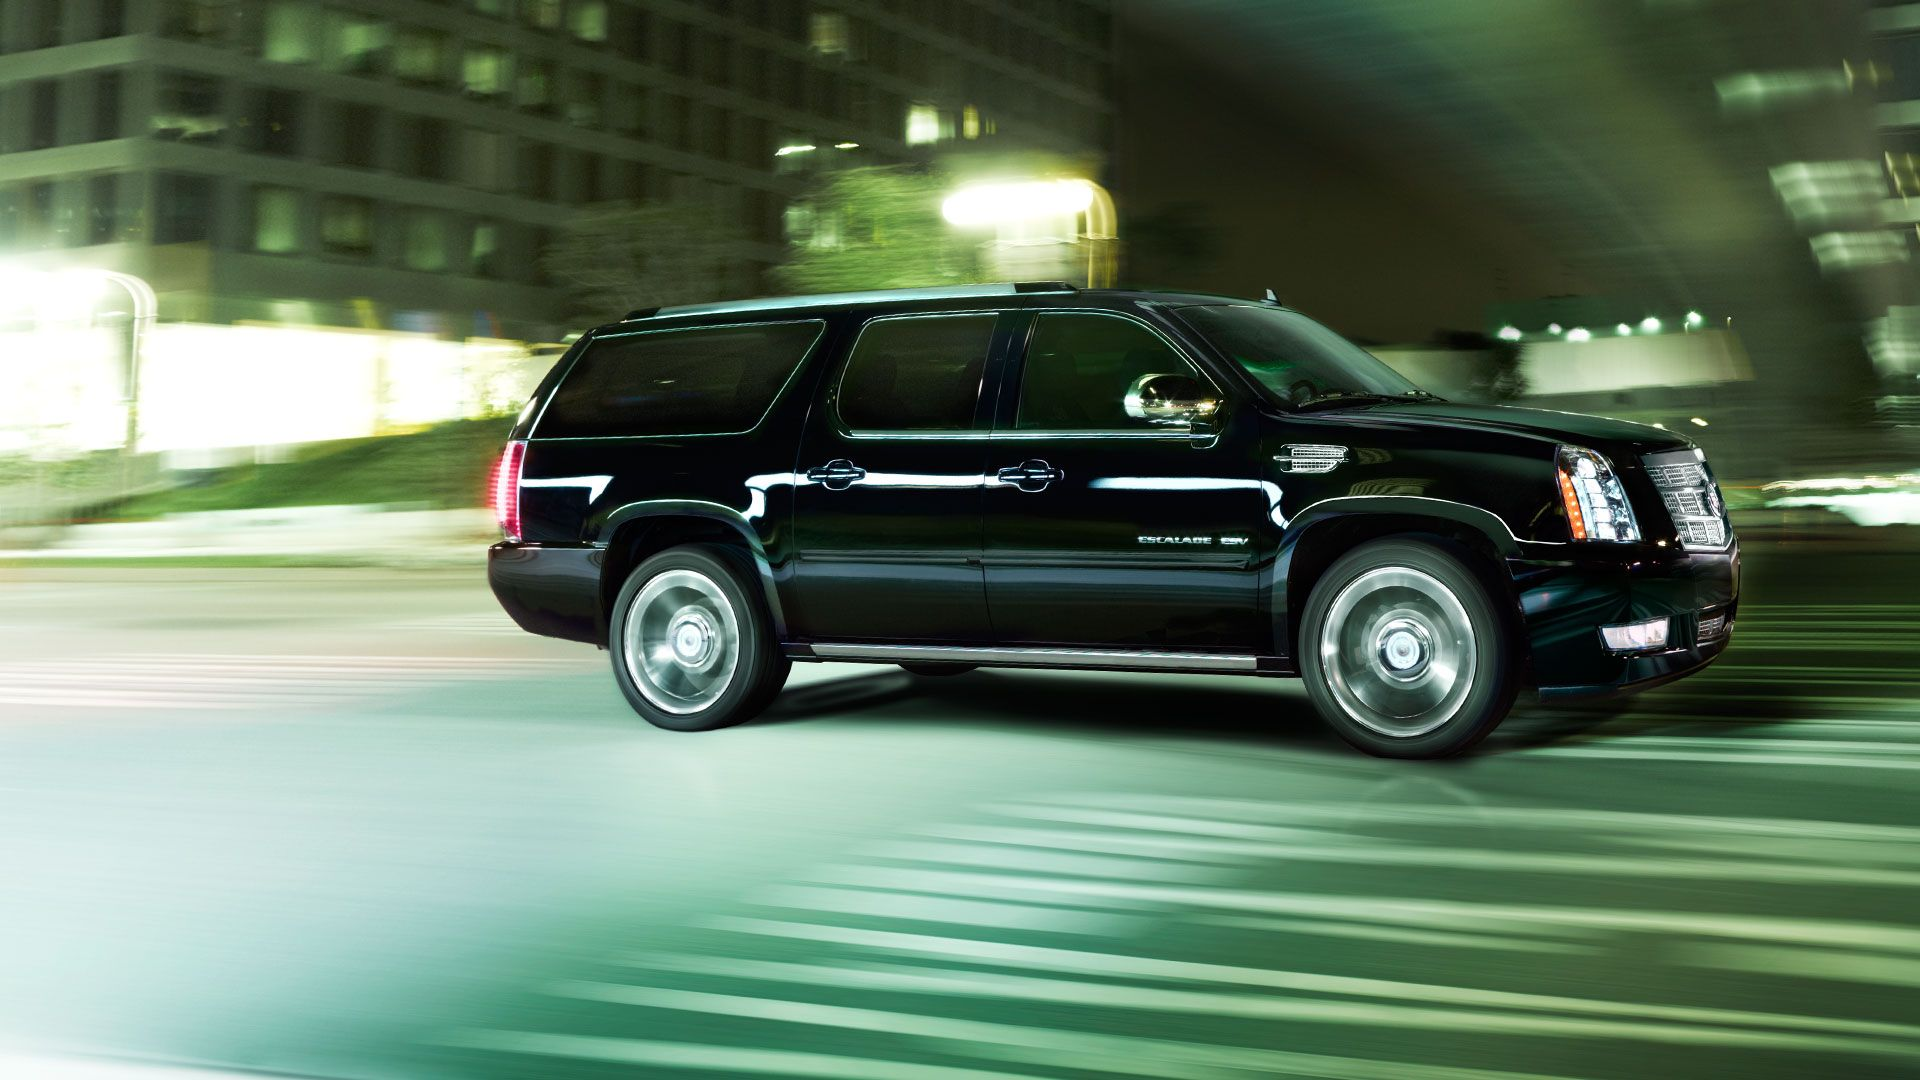 VIP Limo Hire | Affordable Limo Hire | VIP Luxury Limos http://goo.gl/W1Cxkq We are the best VIP luxury limos and affordable limo car service provider and are dedicated to providing prompt, reliable transportation and delivering the highest quality of vehicles. #luxurytransportation, #hireluxurycars, #VIPLuxuryLimos